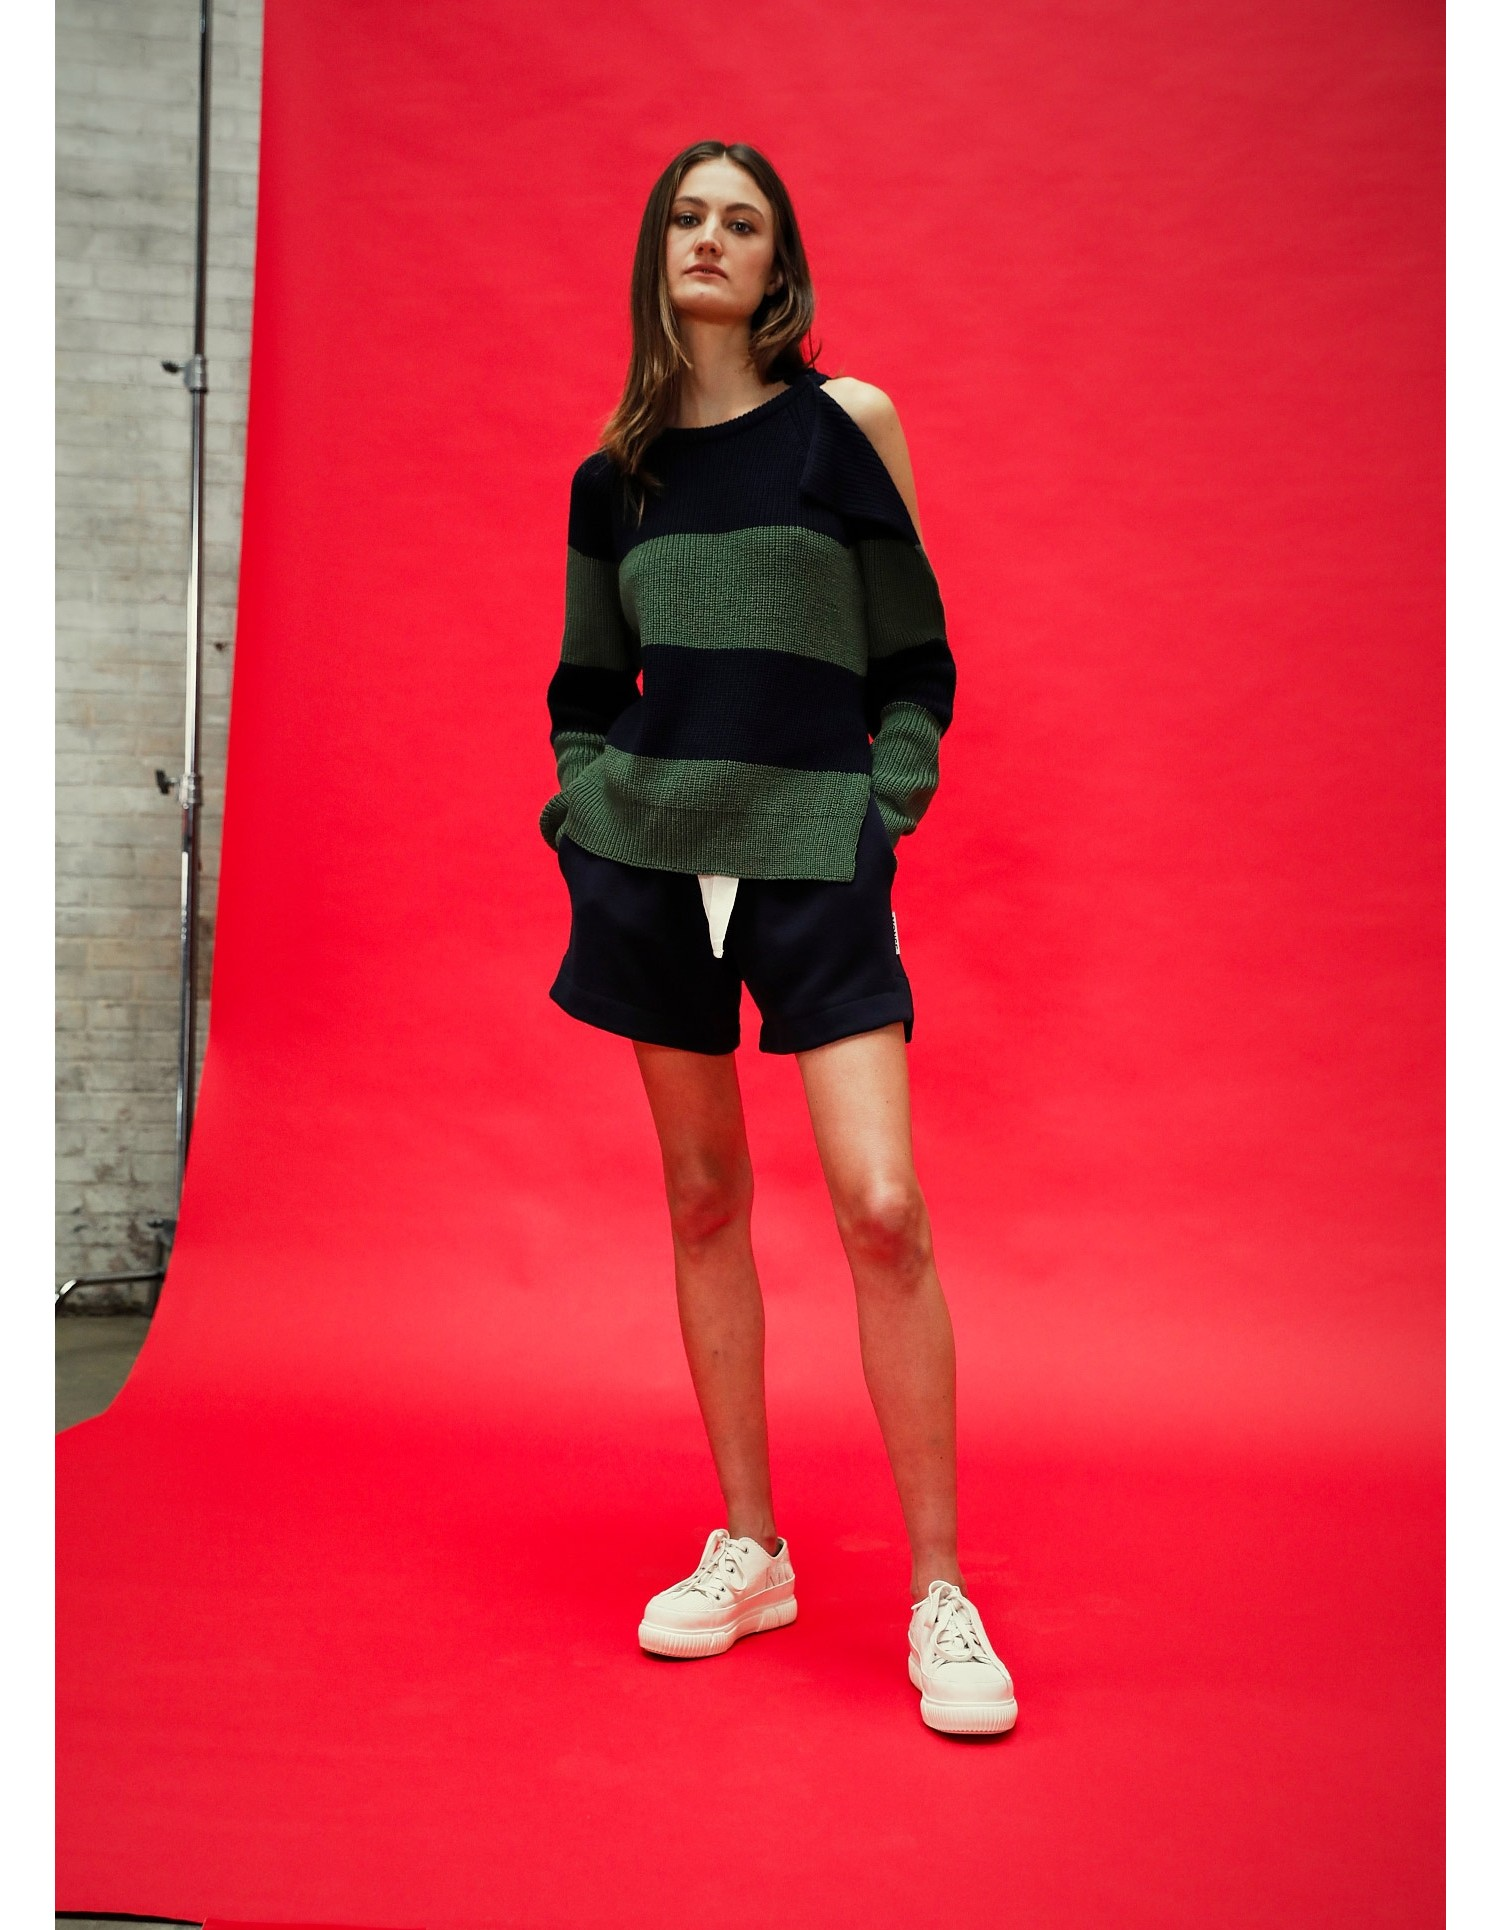 MONSE Stripe Buckle Shoulder Sweater in Midnight and Olive on Model Front View